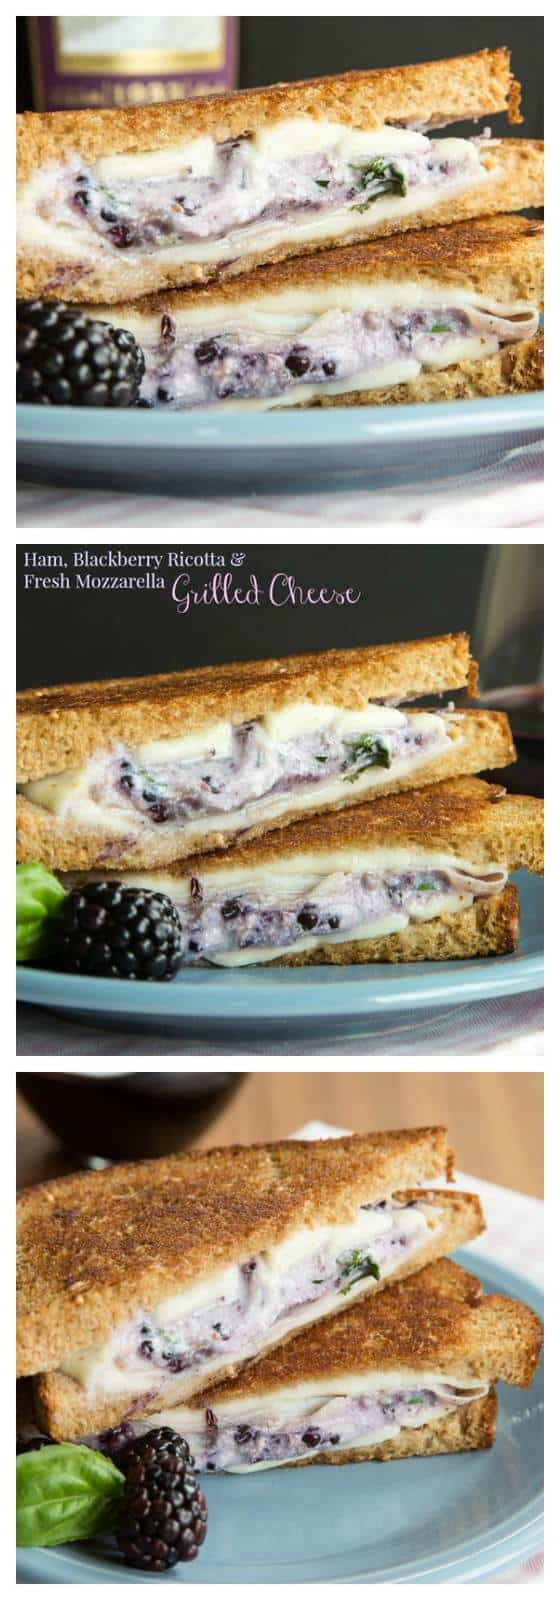 Ham, Blackberry Ricotta, and Fresh Mozzarella Grilled Cheese - this recipe takes the classic comfort food sandwich to fancy pants with plenty of ooey gooey cheesy goodness and a touch of sweet summer berries. | cupcakesandkalechips.com